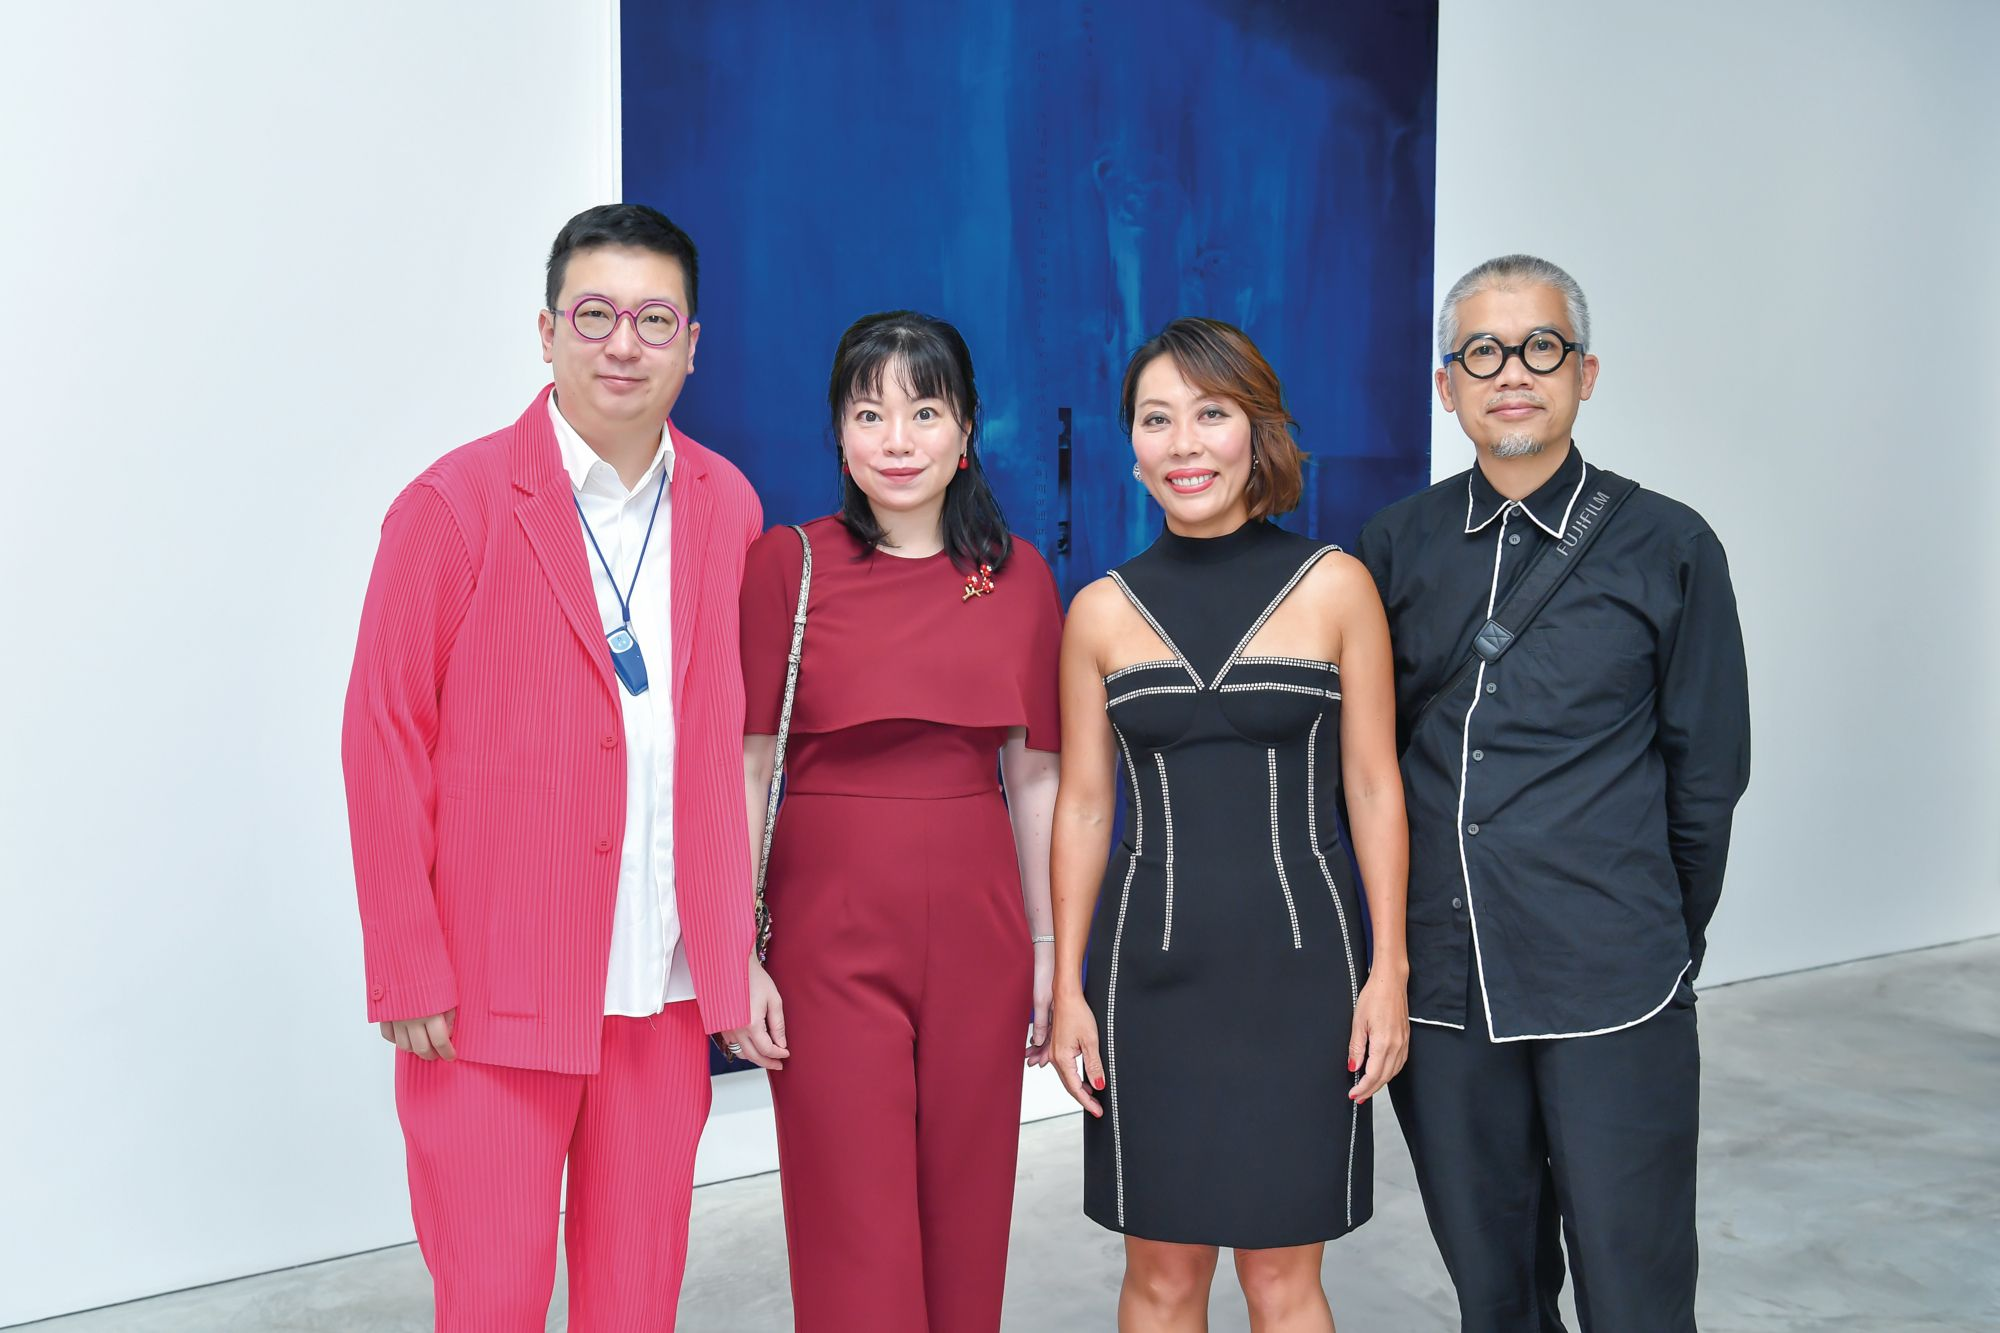 Vicky Lam Co-hosts A Party At Hauser & Wirth To Celebrate Lorna Simpson's Exhibition